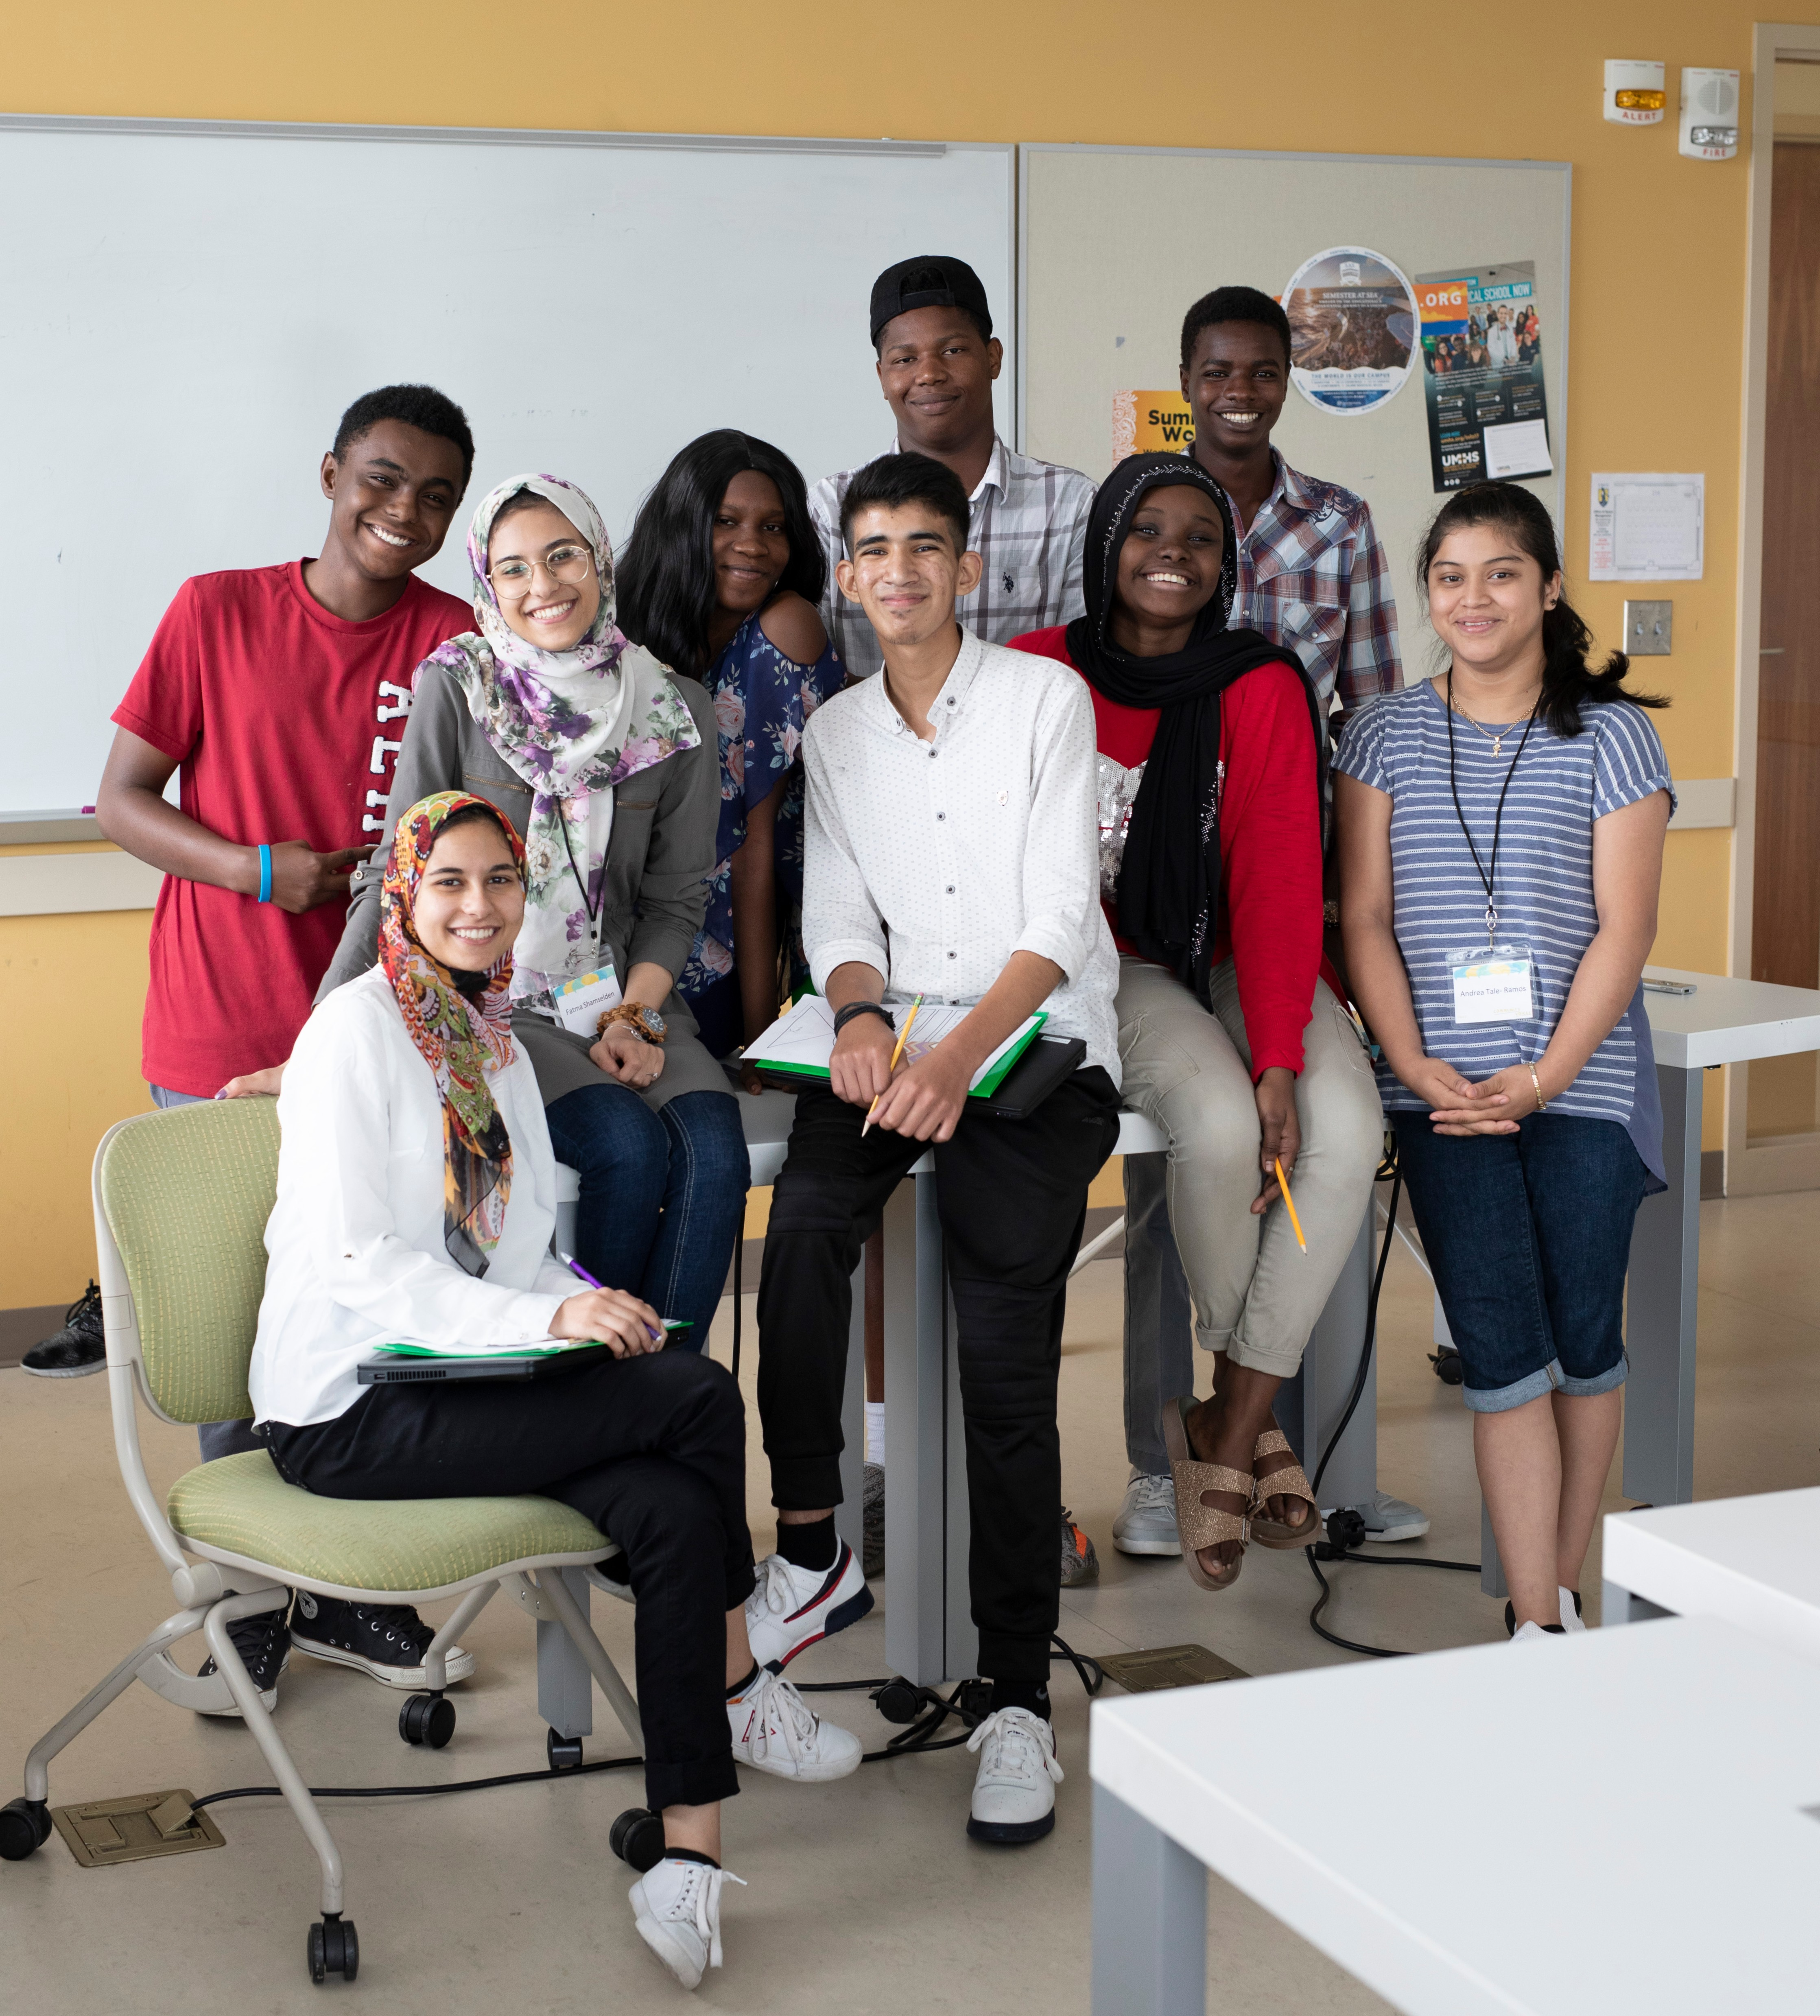 Group of people in a classroom